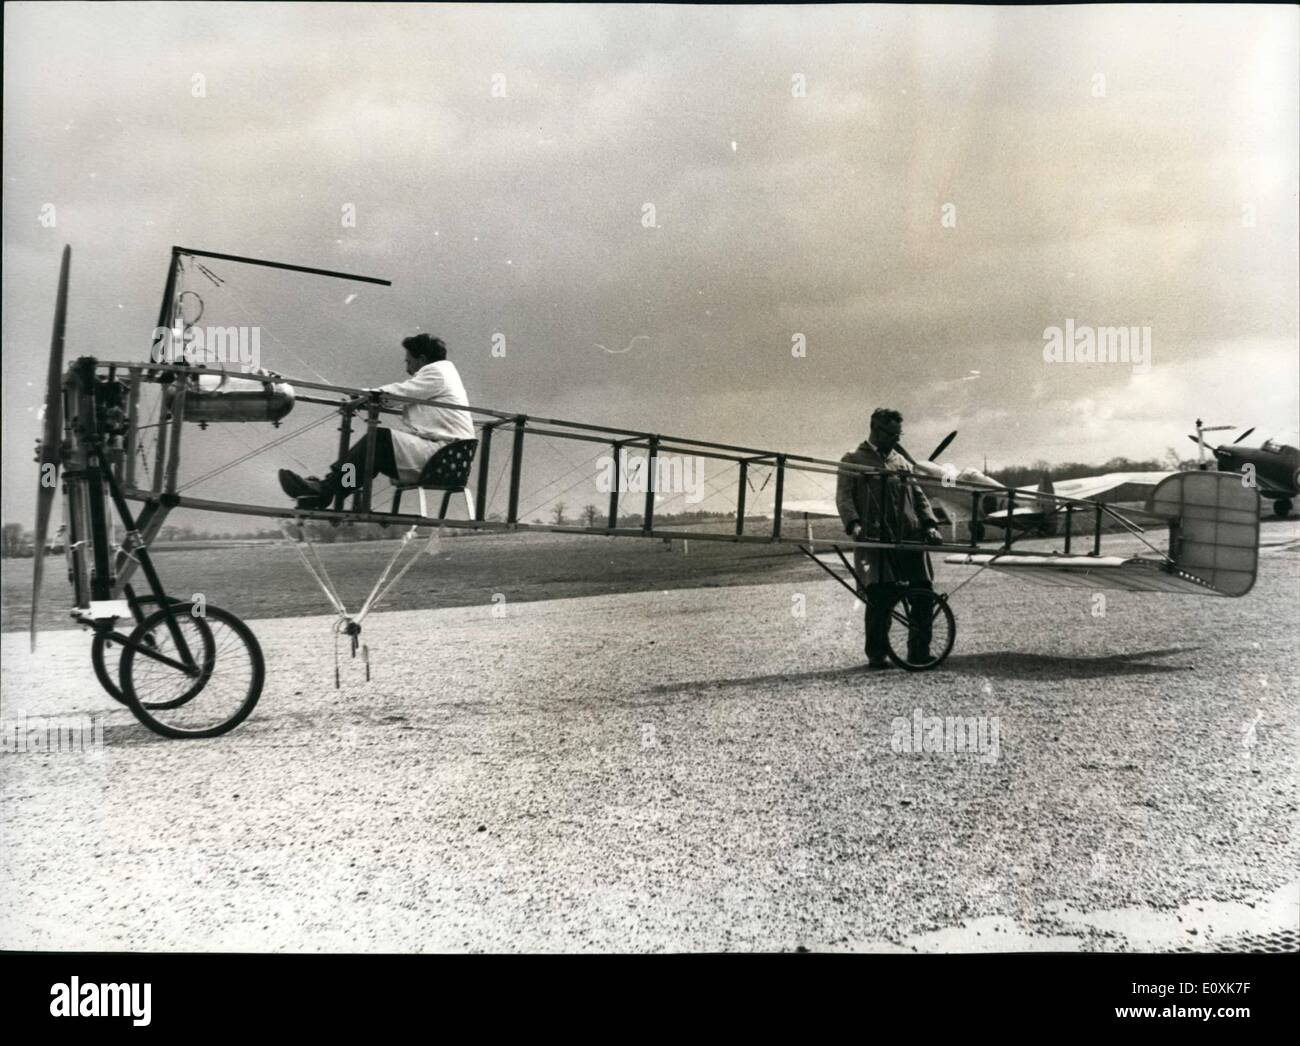 Mar. 03, 1967 - An Aircraft built by flying Pioneer Bleriot in 1909 will soon fly again: An aircraft built by Louis Bleriot in 1909 will soon fly again. It is own of the only two such machines known to be in existence. Bleriot built the aircraft, a single engined monoplnae, following his successful flight across the English Channel in 1909. It is being overhauled by the staff at the Shuttleworth Collection (of old aircraft, cars, by bicycles)at Old Warden Aerodrme, near Biggleswade, Bedfordshire. The present owner, London businessman, Mr - Stock Image